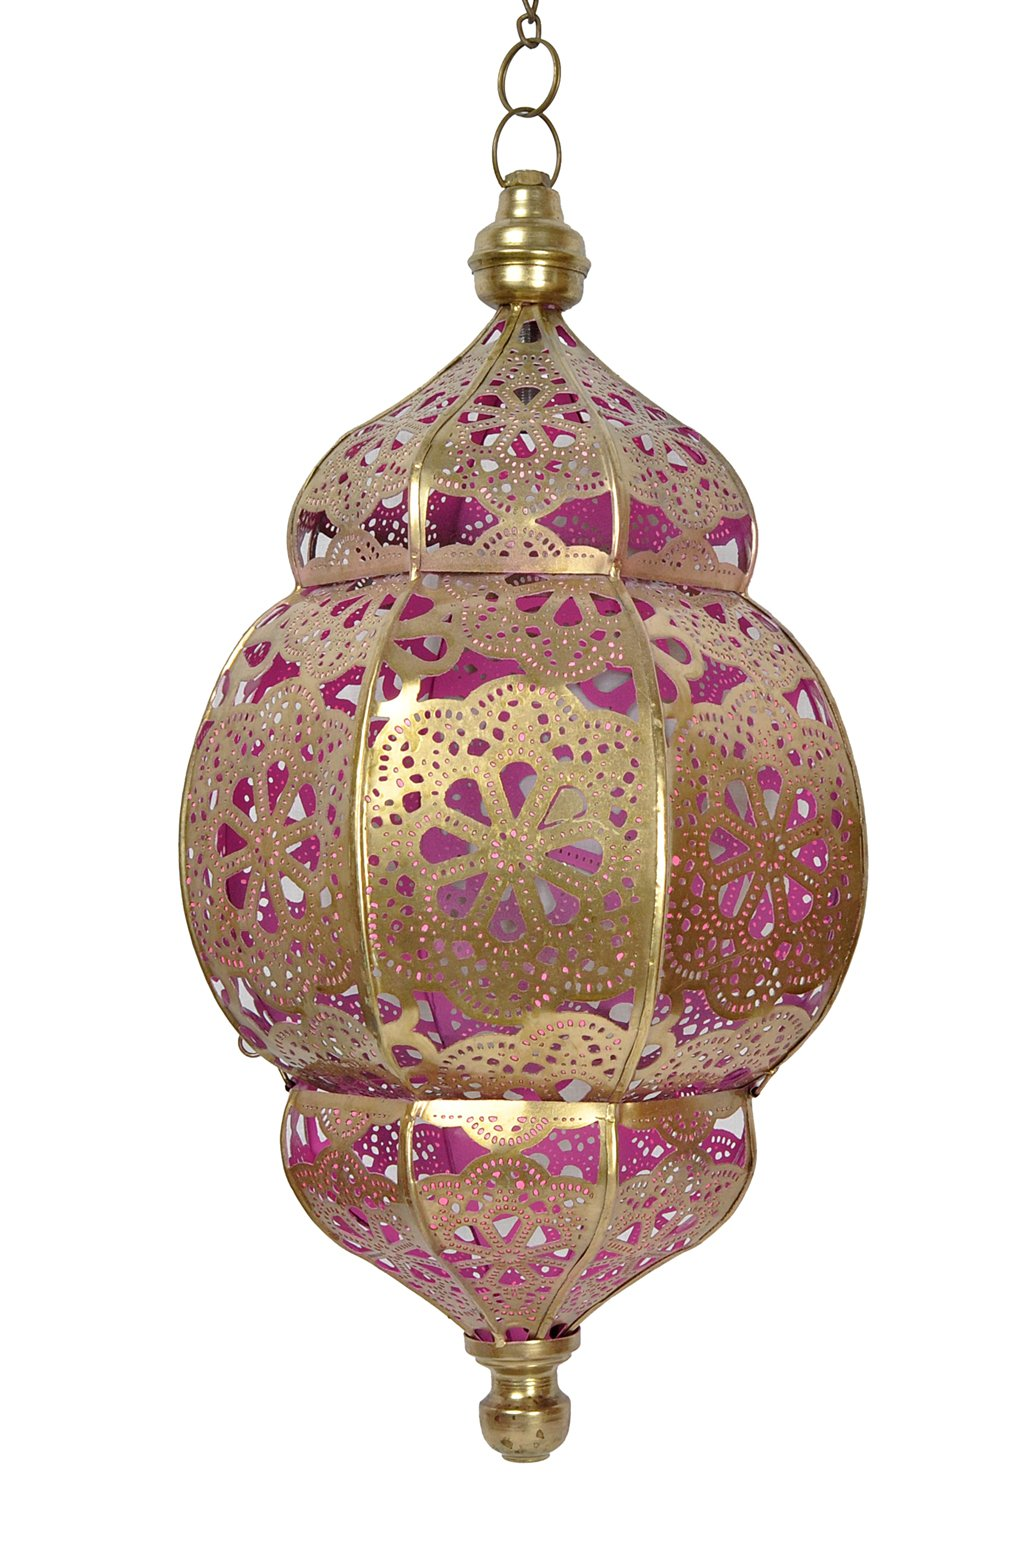 Morrocan Lamps Hanging Christmas Home Decorations Pink by Lalhaveli